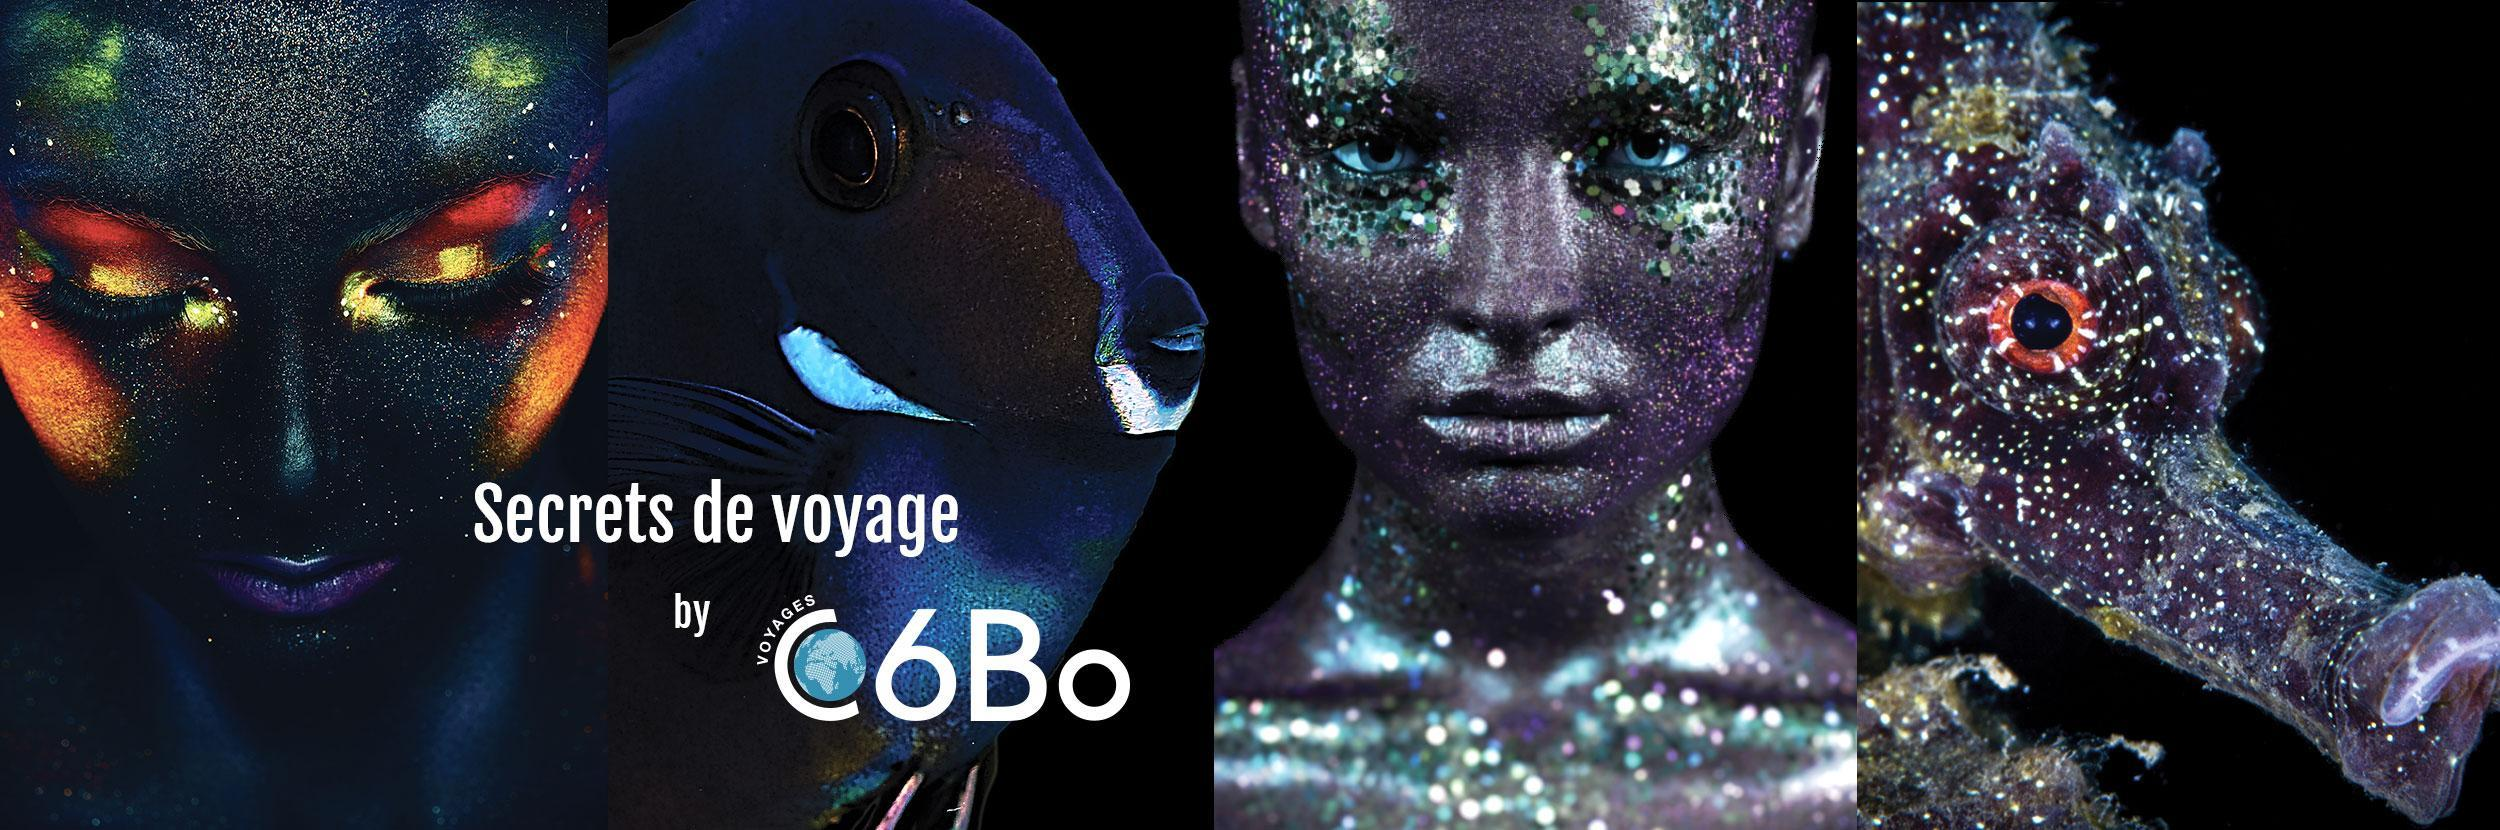 c6bo voyage plongee page accueil 2019 combo4